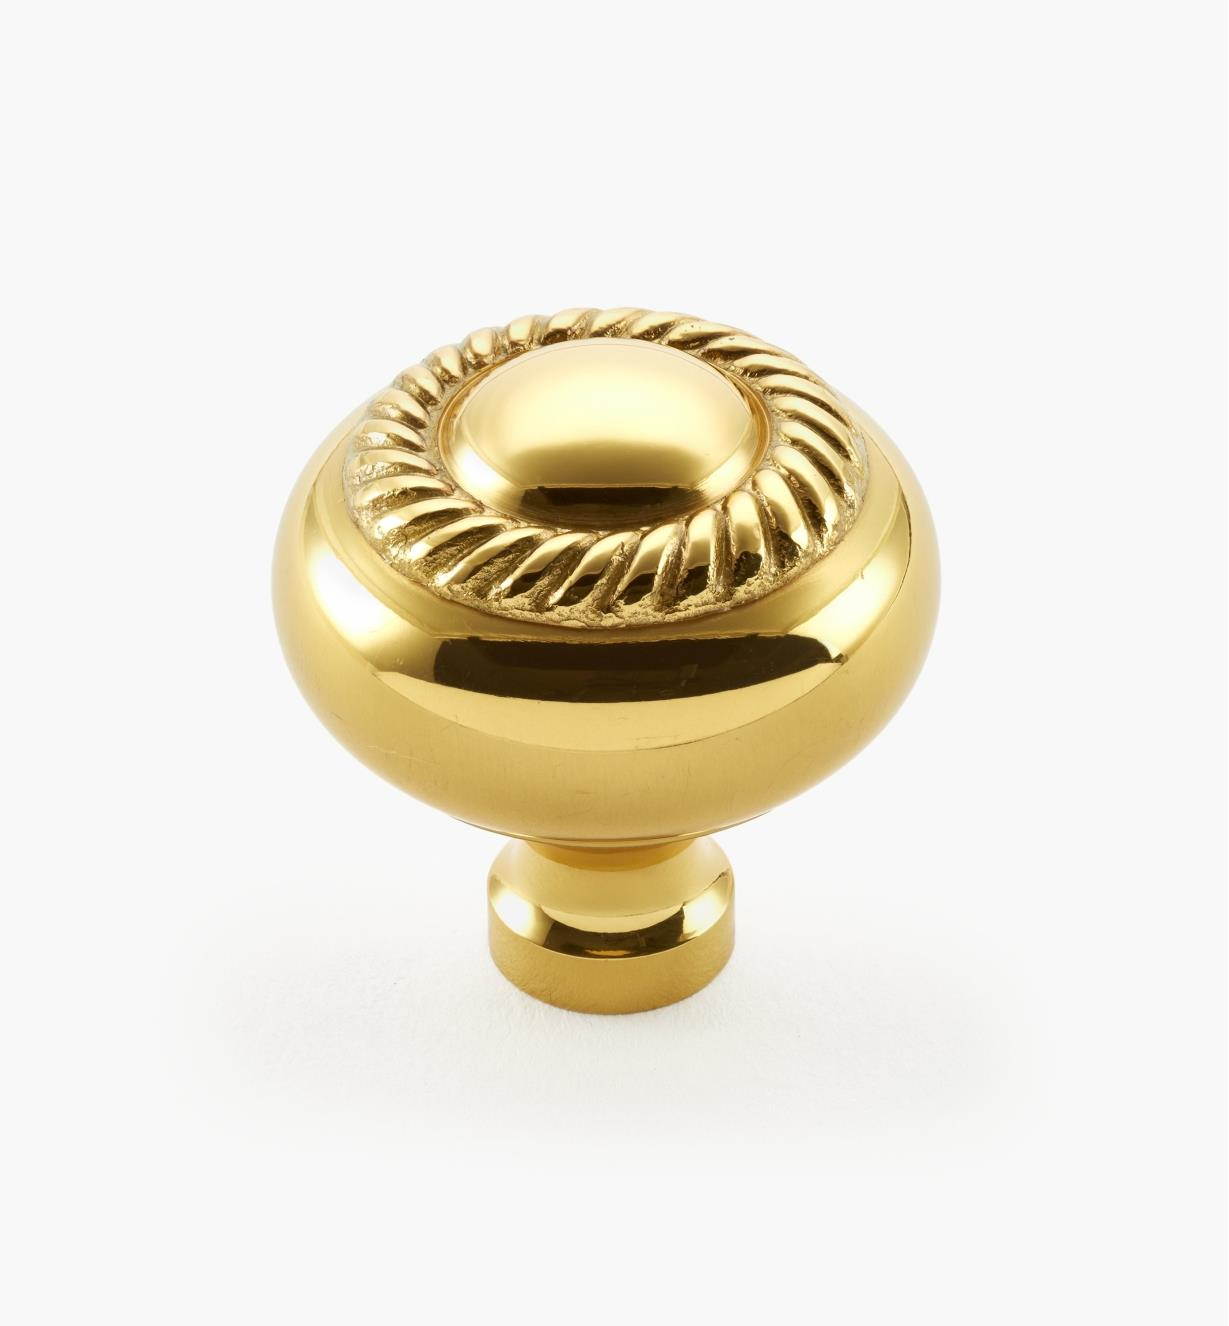 "03W1301 - Brass Liberty, 1 1/4"" x 1 3/8"" Rope Knob, ea."